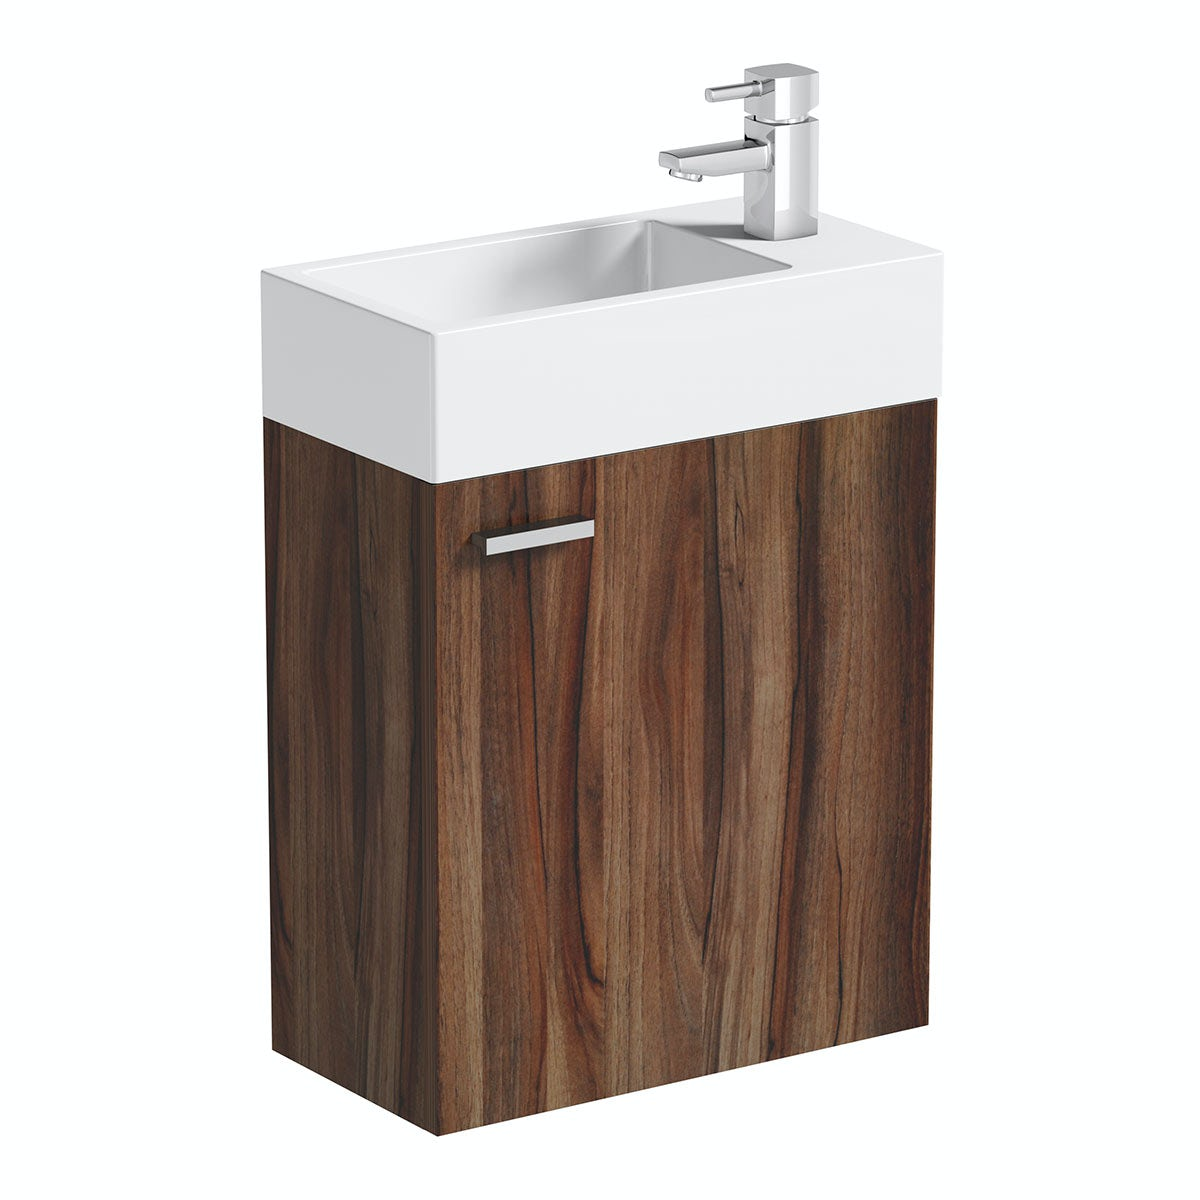 Orchard Walnut cloakroom wall hung unit with resin basin 410mm